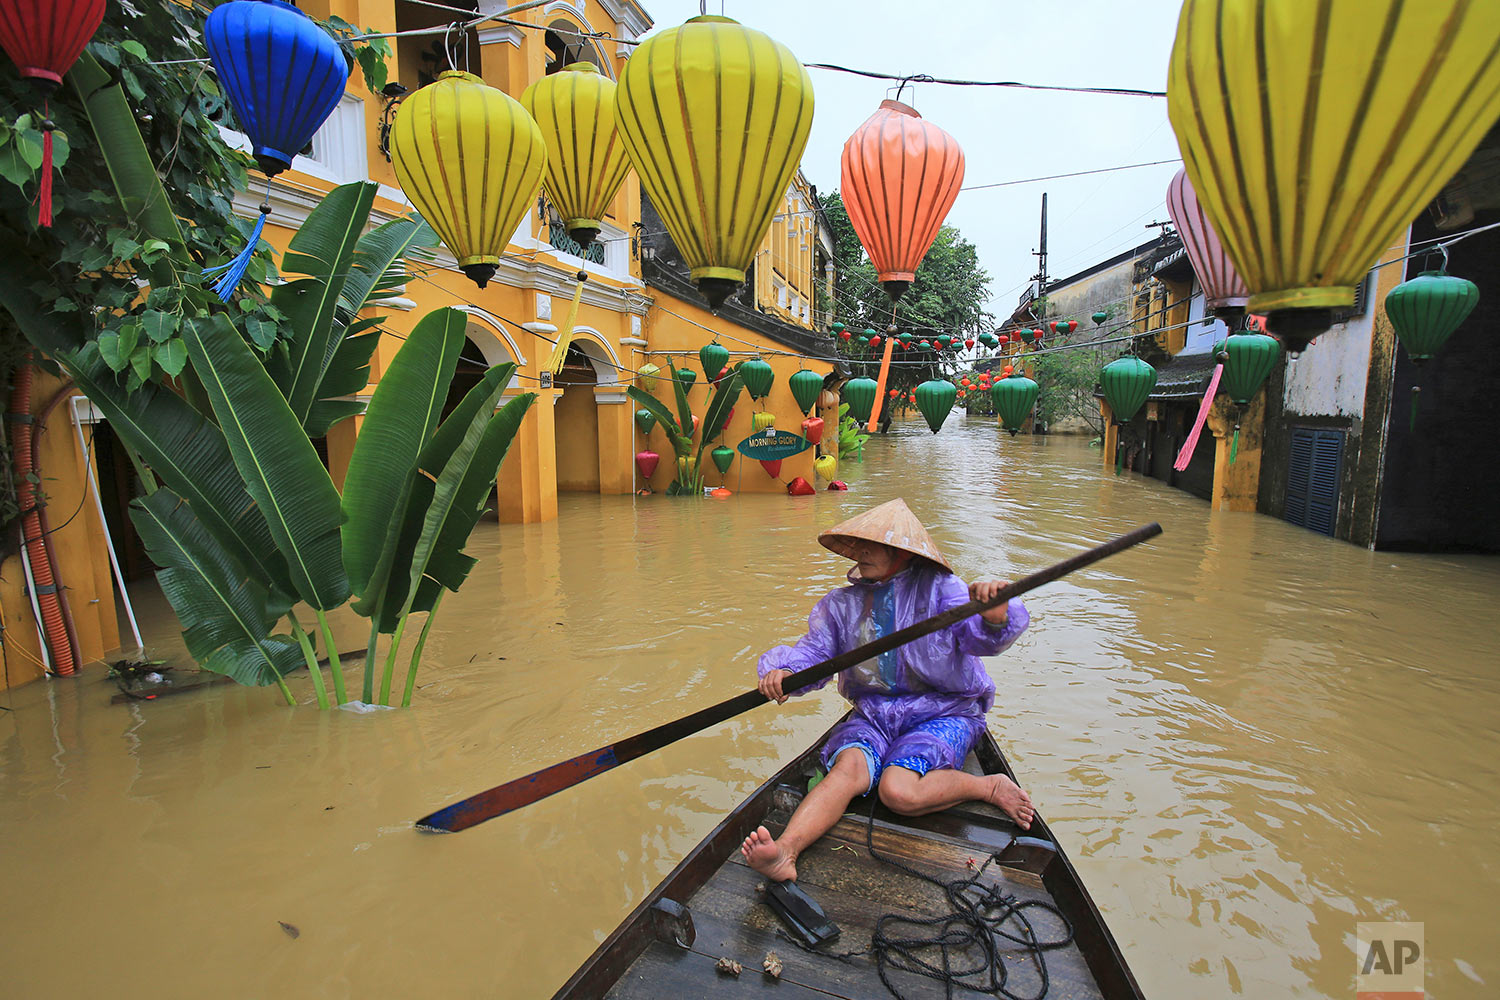 In this Monday, Nov. 6, 2017, photo, Nguyen Thi Vui paddles her boat in the flooded streets of Hoi An, Vietnam. A powerful typhoon that rocked Vietnam has killed dozens of people and caused extensive damage to the country's south-central region ahead of the APEC summit that will draw leaders from around the world, the government said Monday. (AP Photo/Hau Dinh)